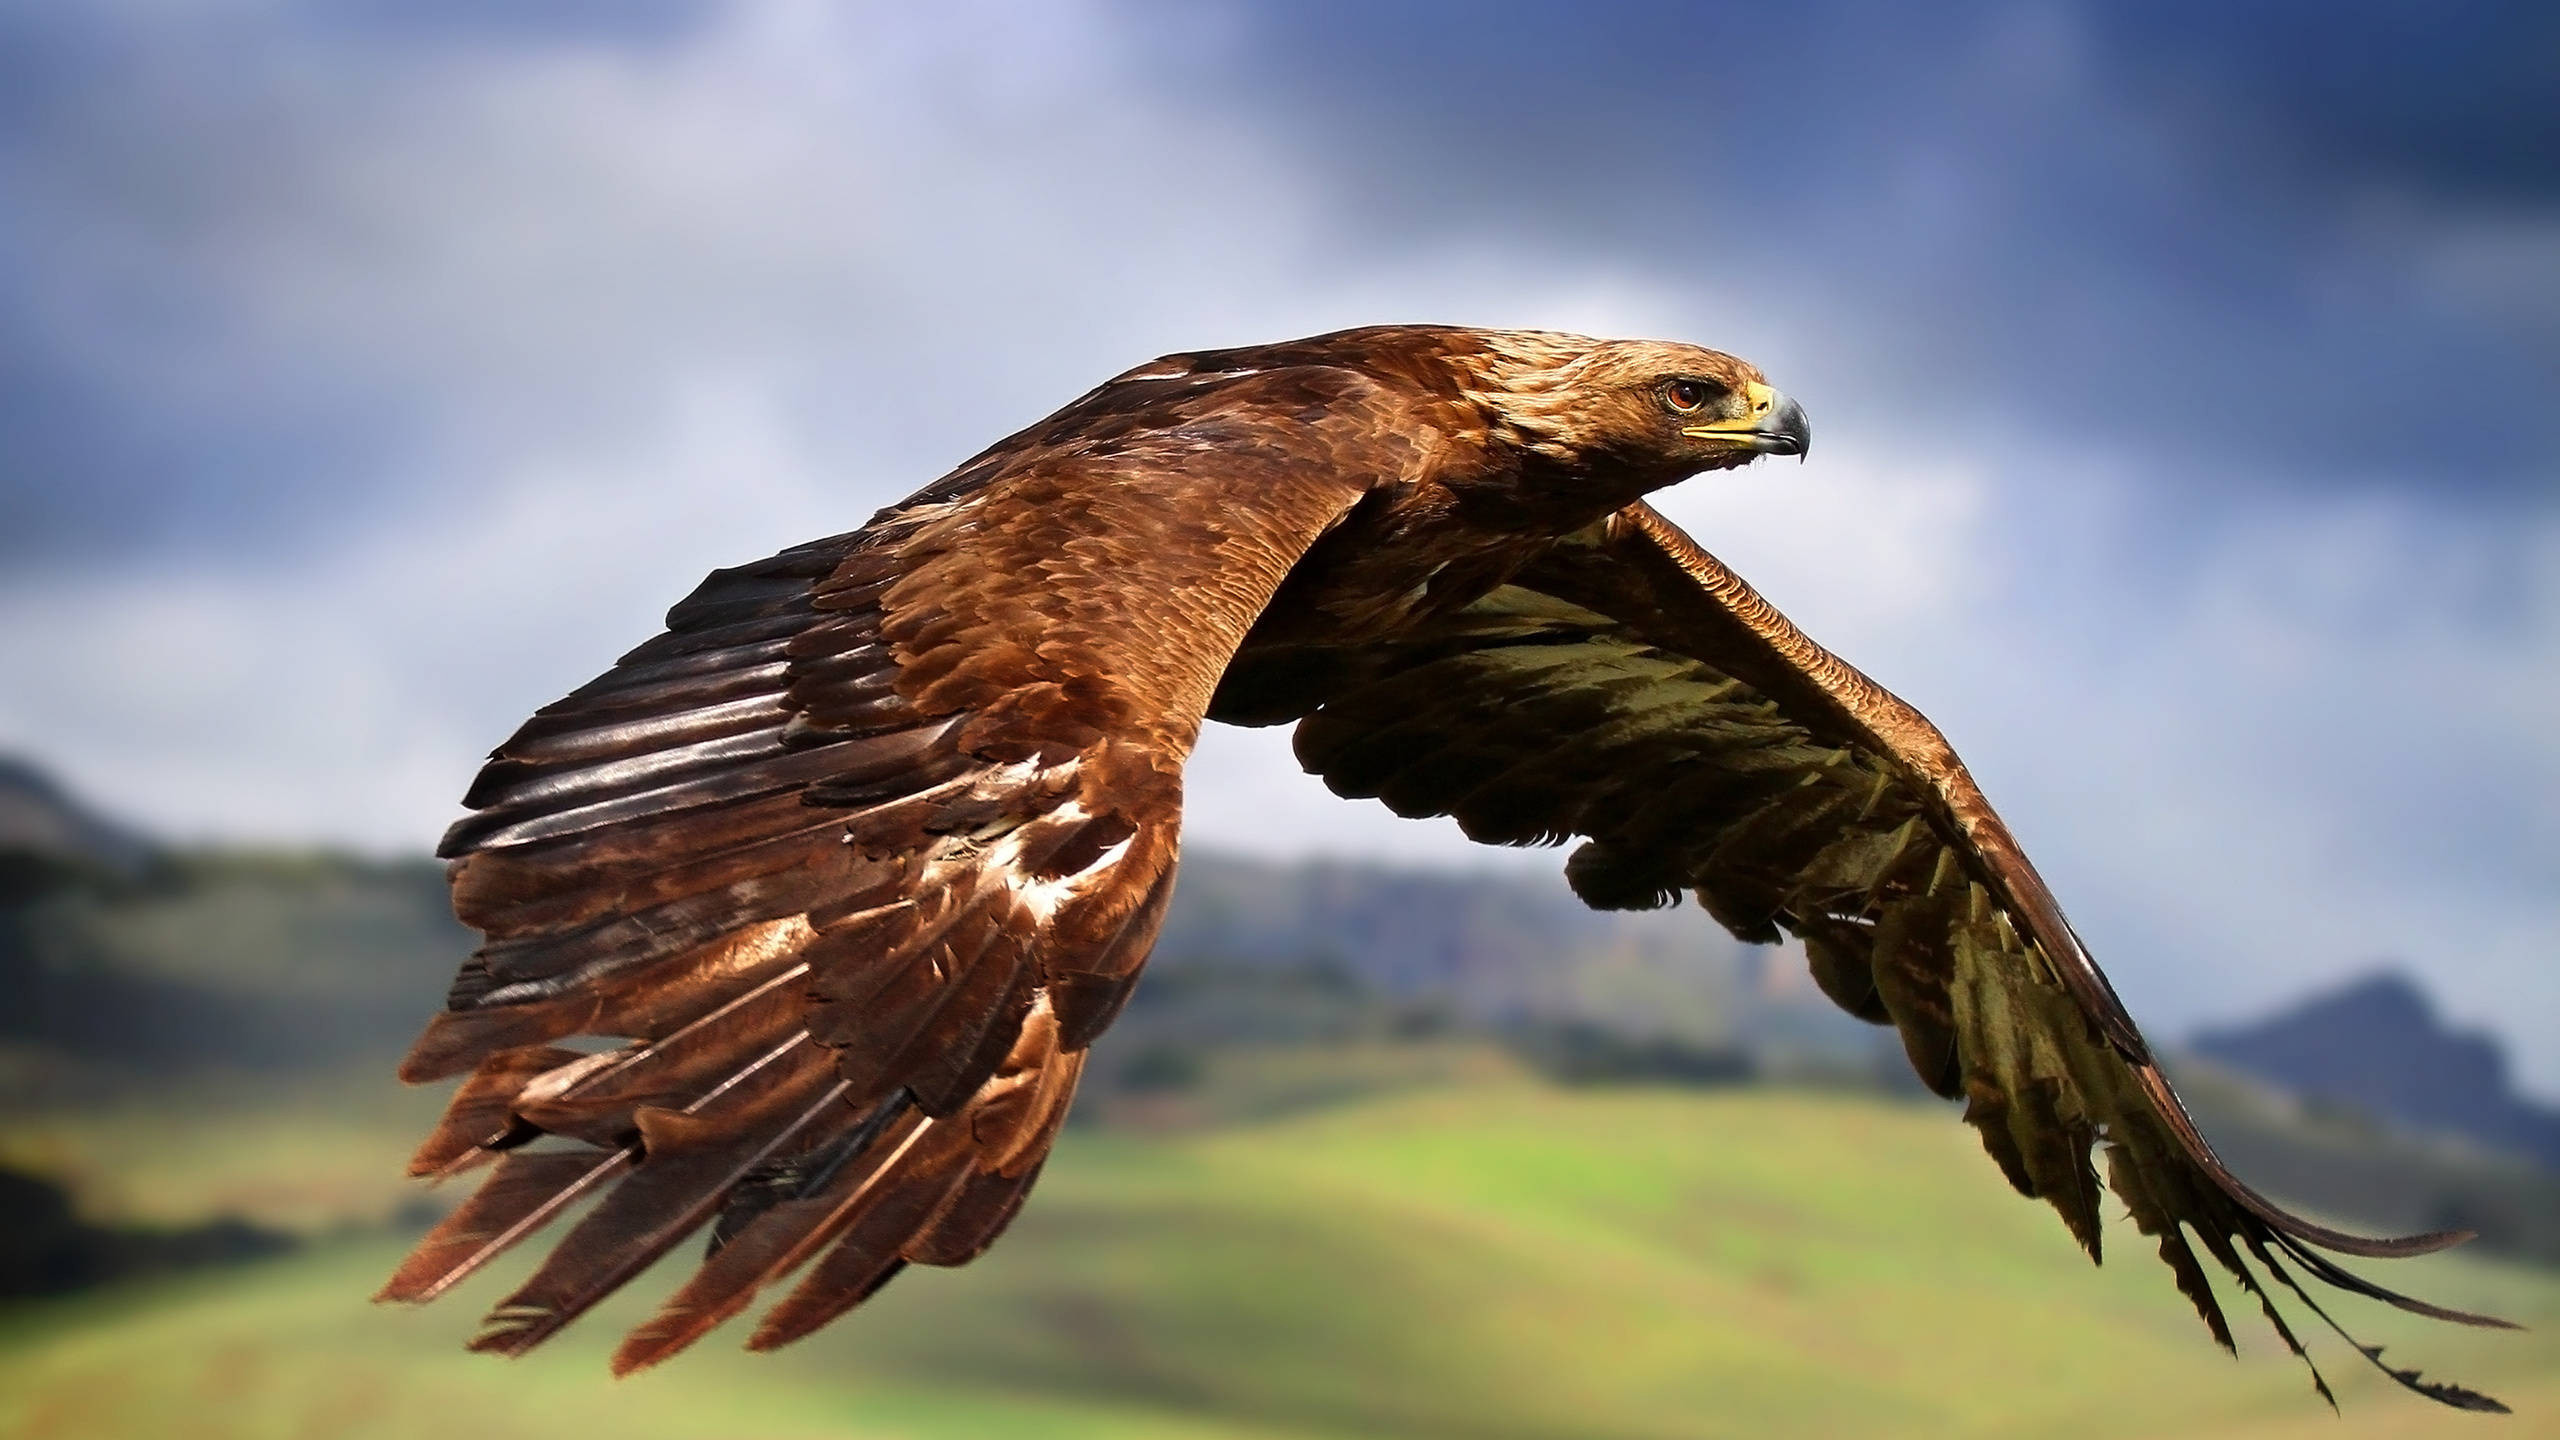 2560x1440 Wallpaper Eagle in Fight [1920x1080] | High Quality Wallpapers | Pinterest  | Bald eagles